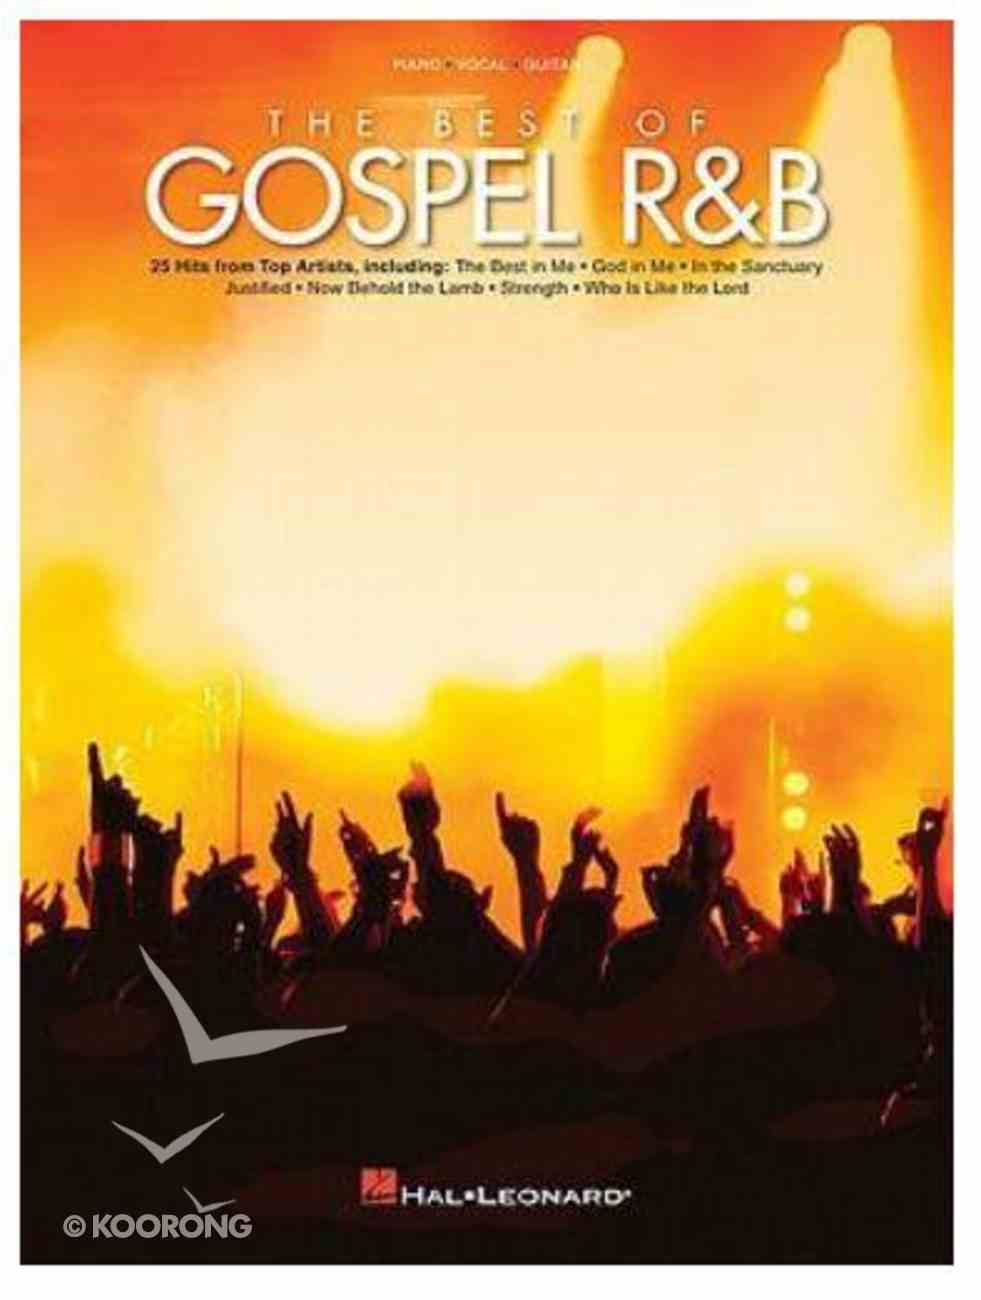 Best of Gospel R&B, the (Music Book) (Piano/vocal/guitar) Paperback